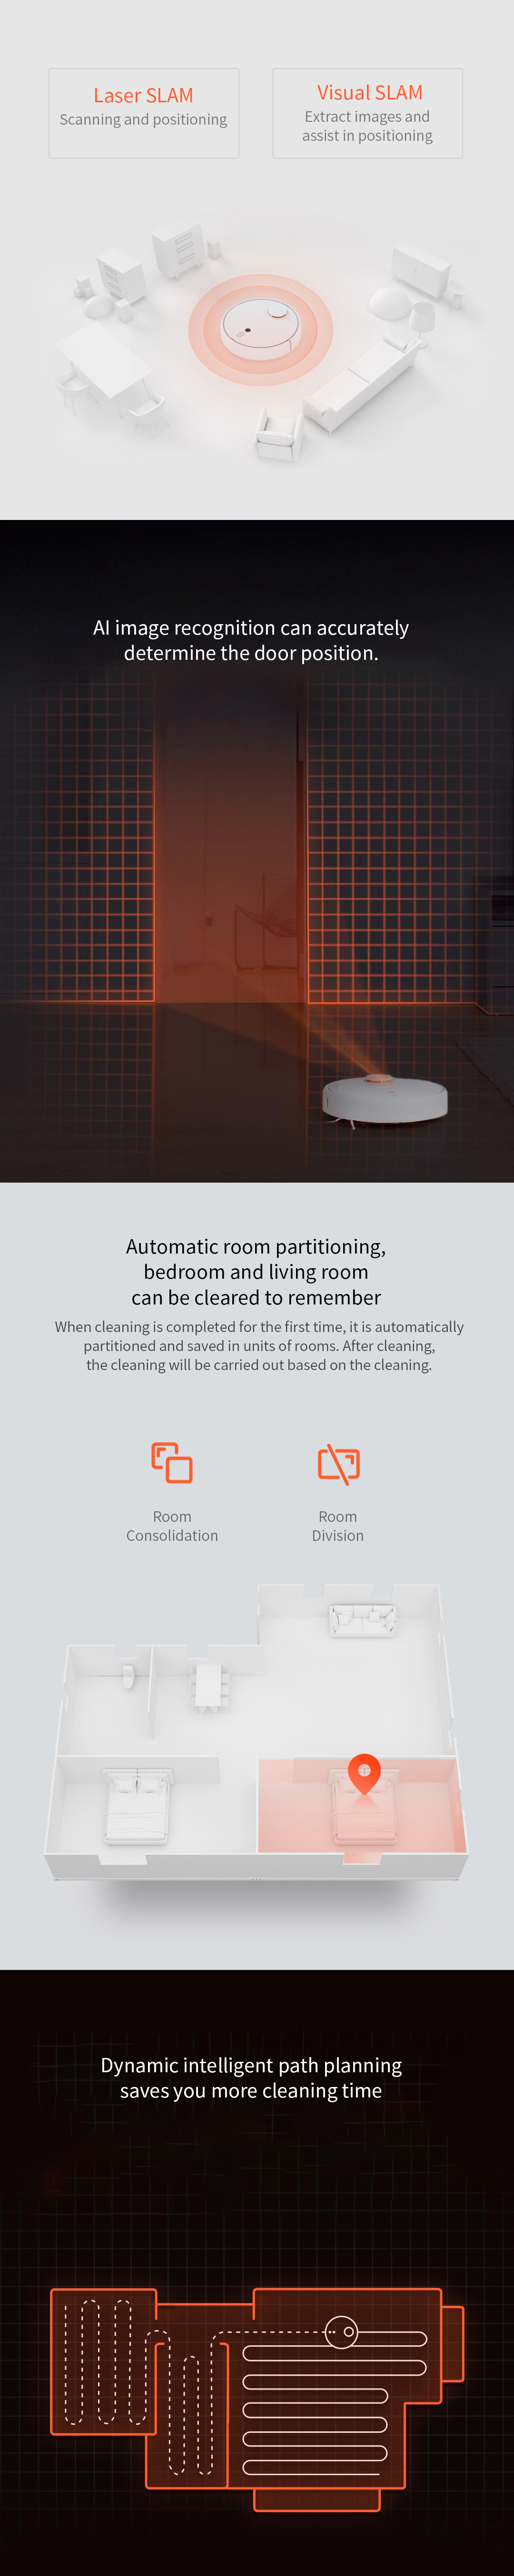 2019 XIAOMI Mijia 1S Robot Vacuum Cleaner AI Intelligent Planning, 5200mAh  Battery, 2000Pa Strong Suction, MIJIA APP Control, LDS Laser navigation,